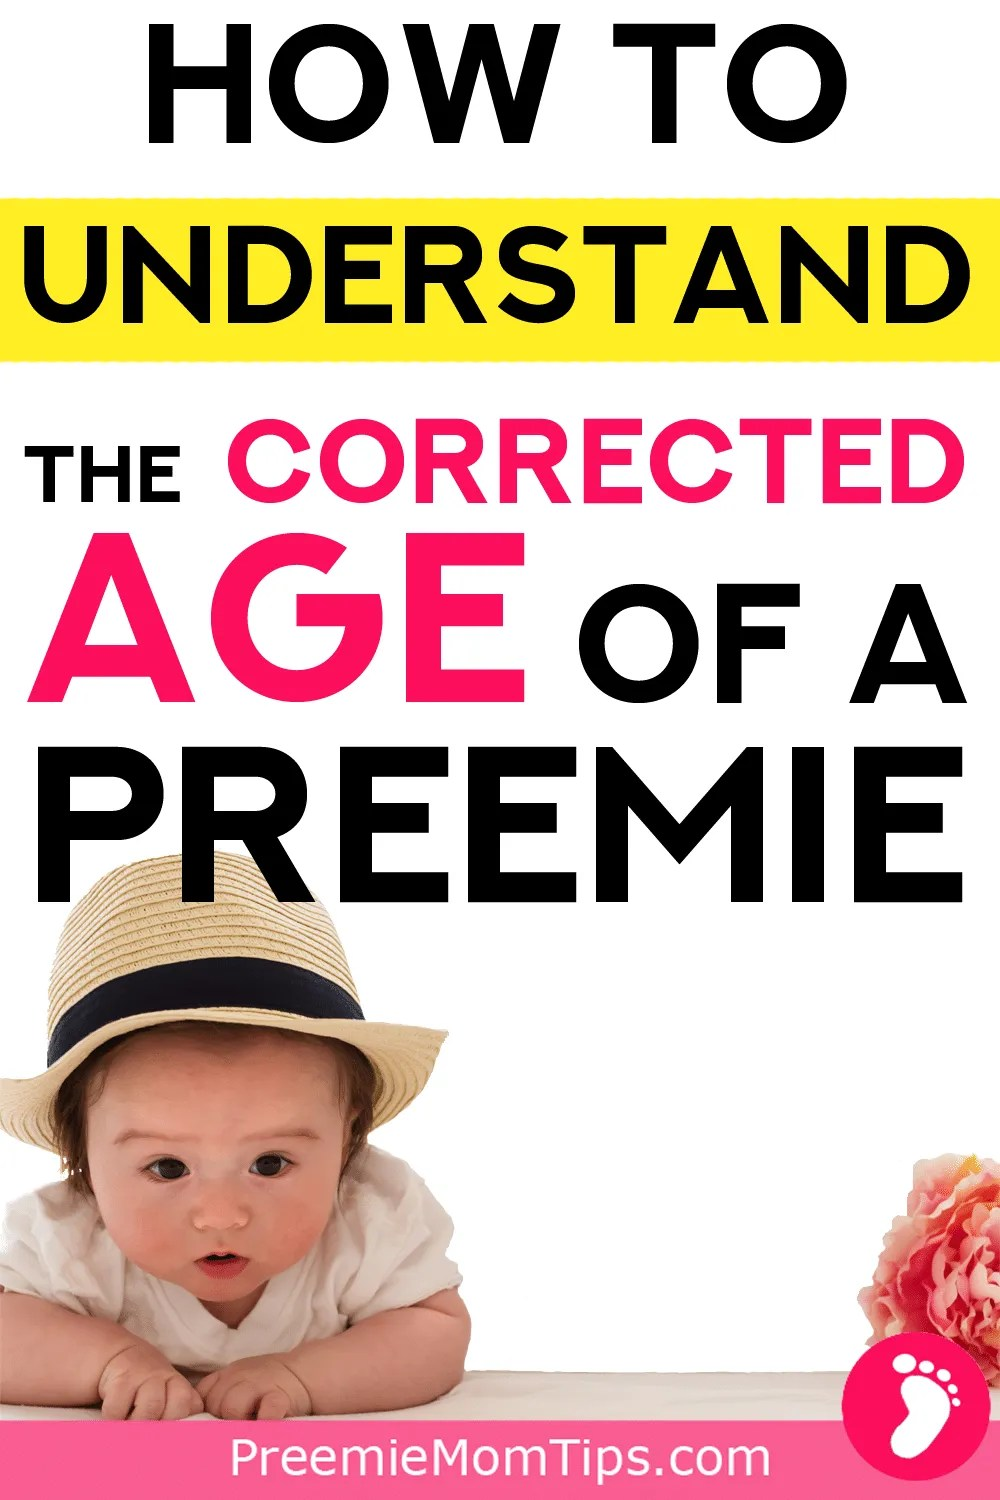 As new mom to premature babies, we have to learn to take care of our miracles! Check out all you need to know about your preemie's corrected age!